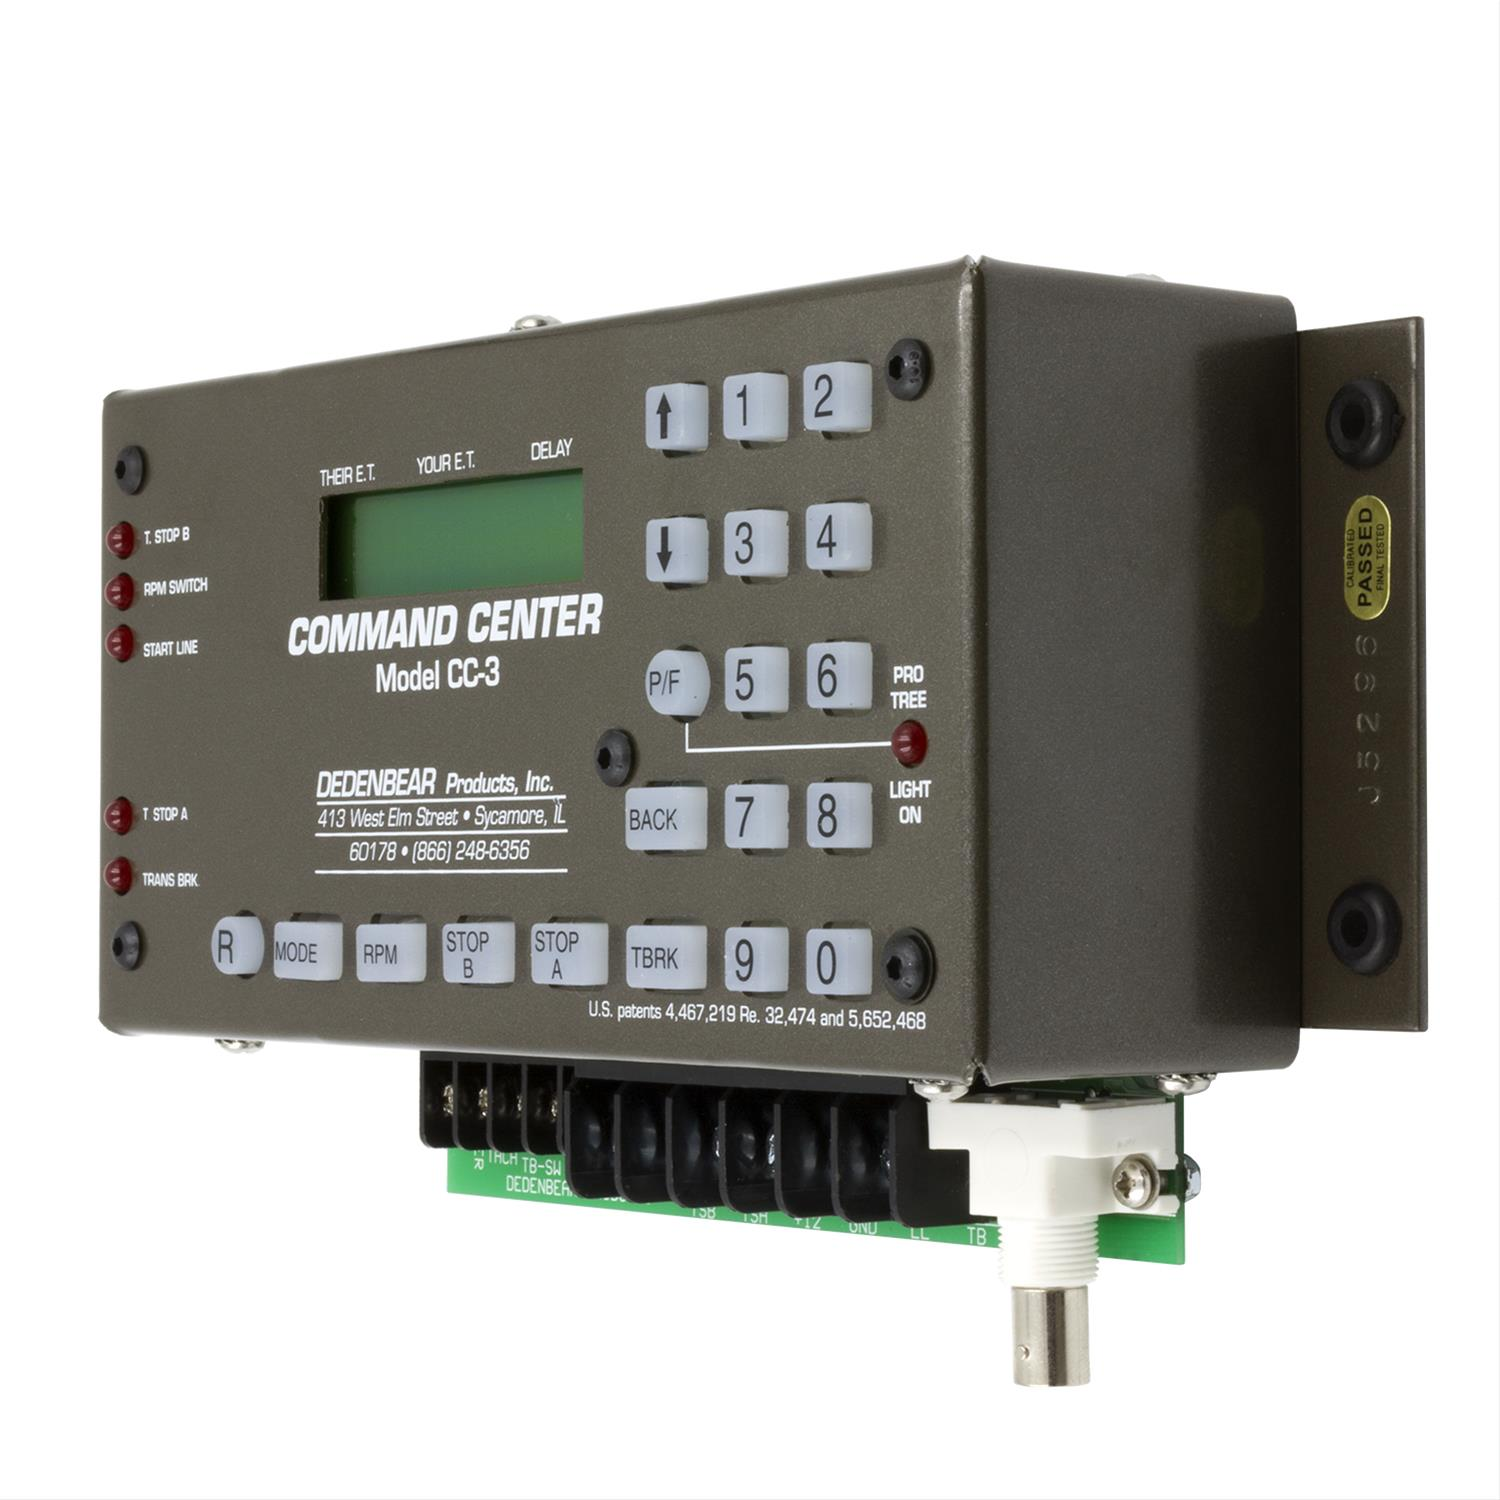 hight resolution of dedenbear command center delay boxes cc3 free shipping on orders over 99 at summit racing